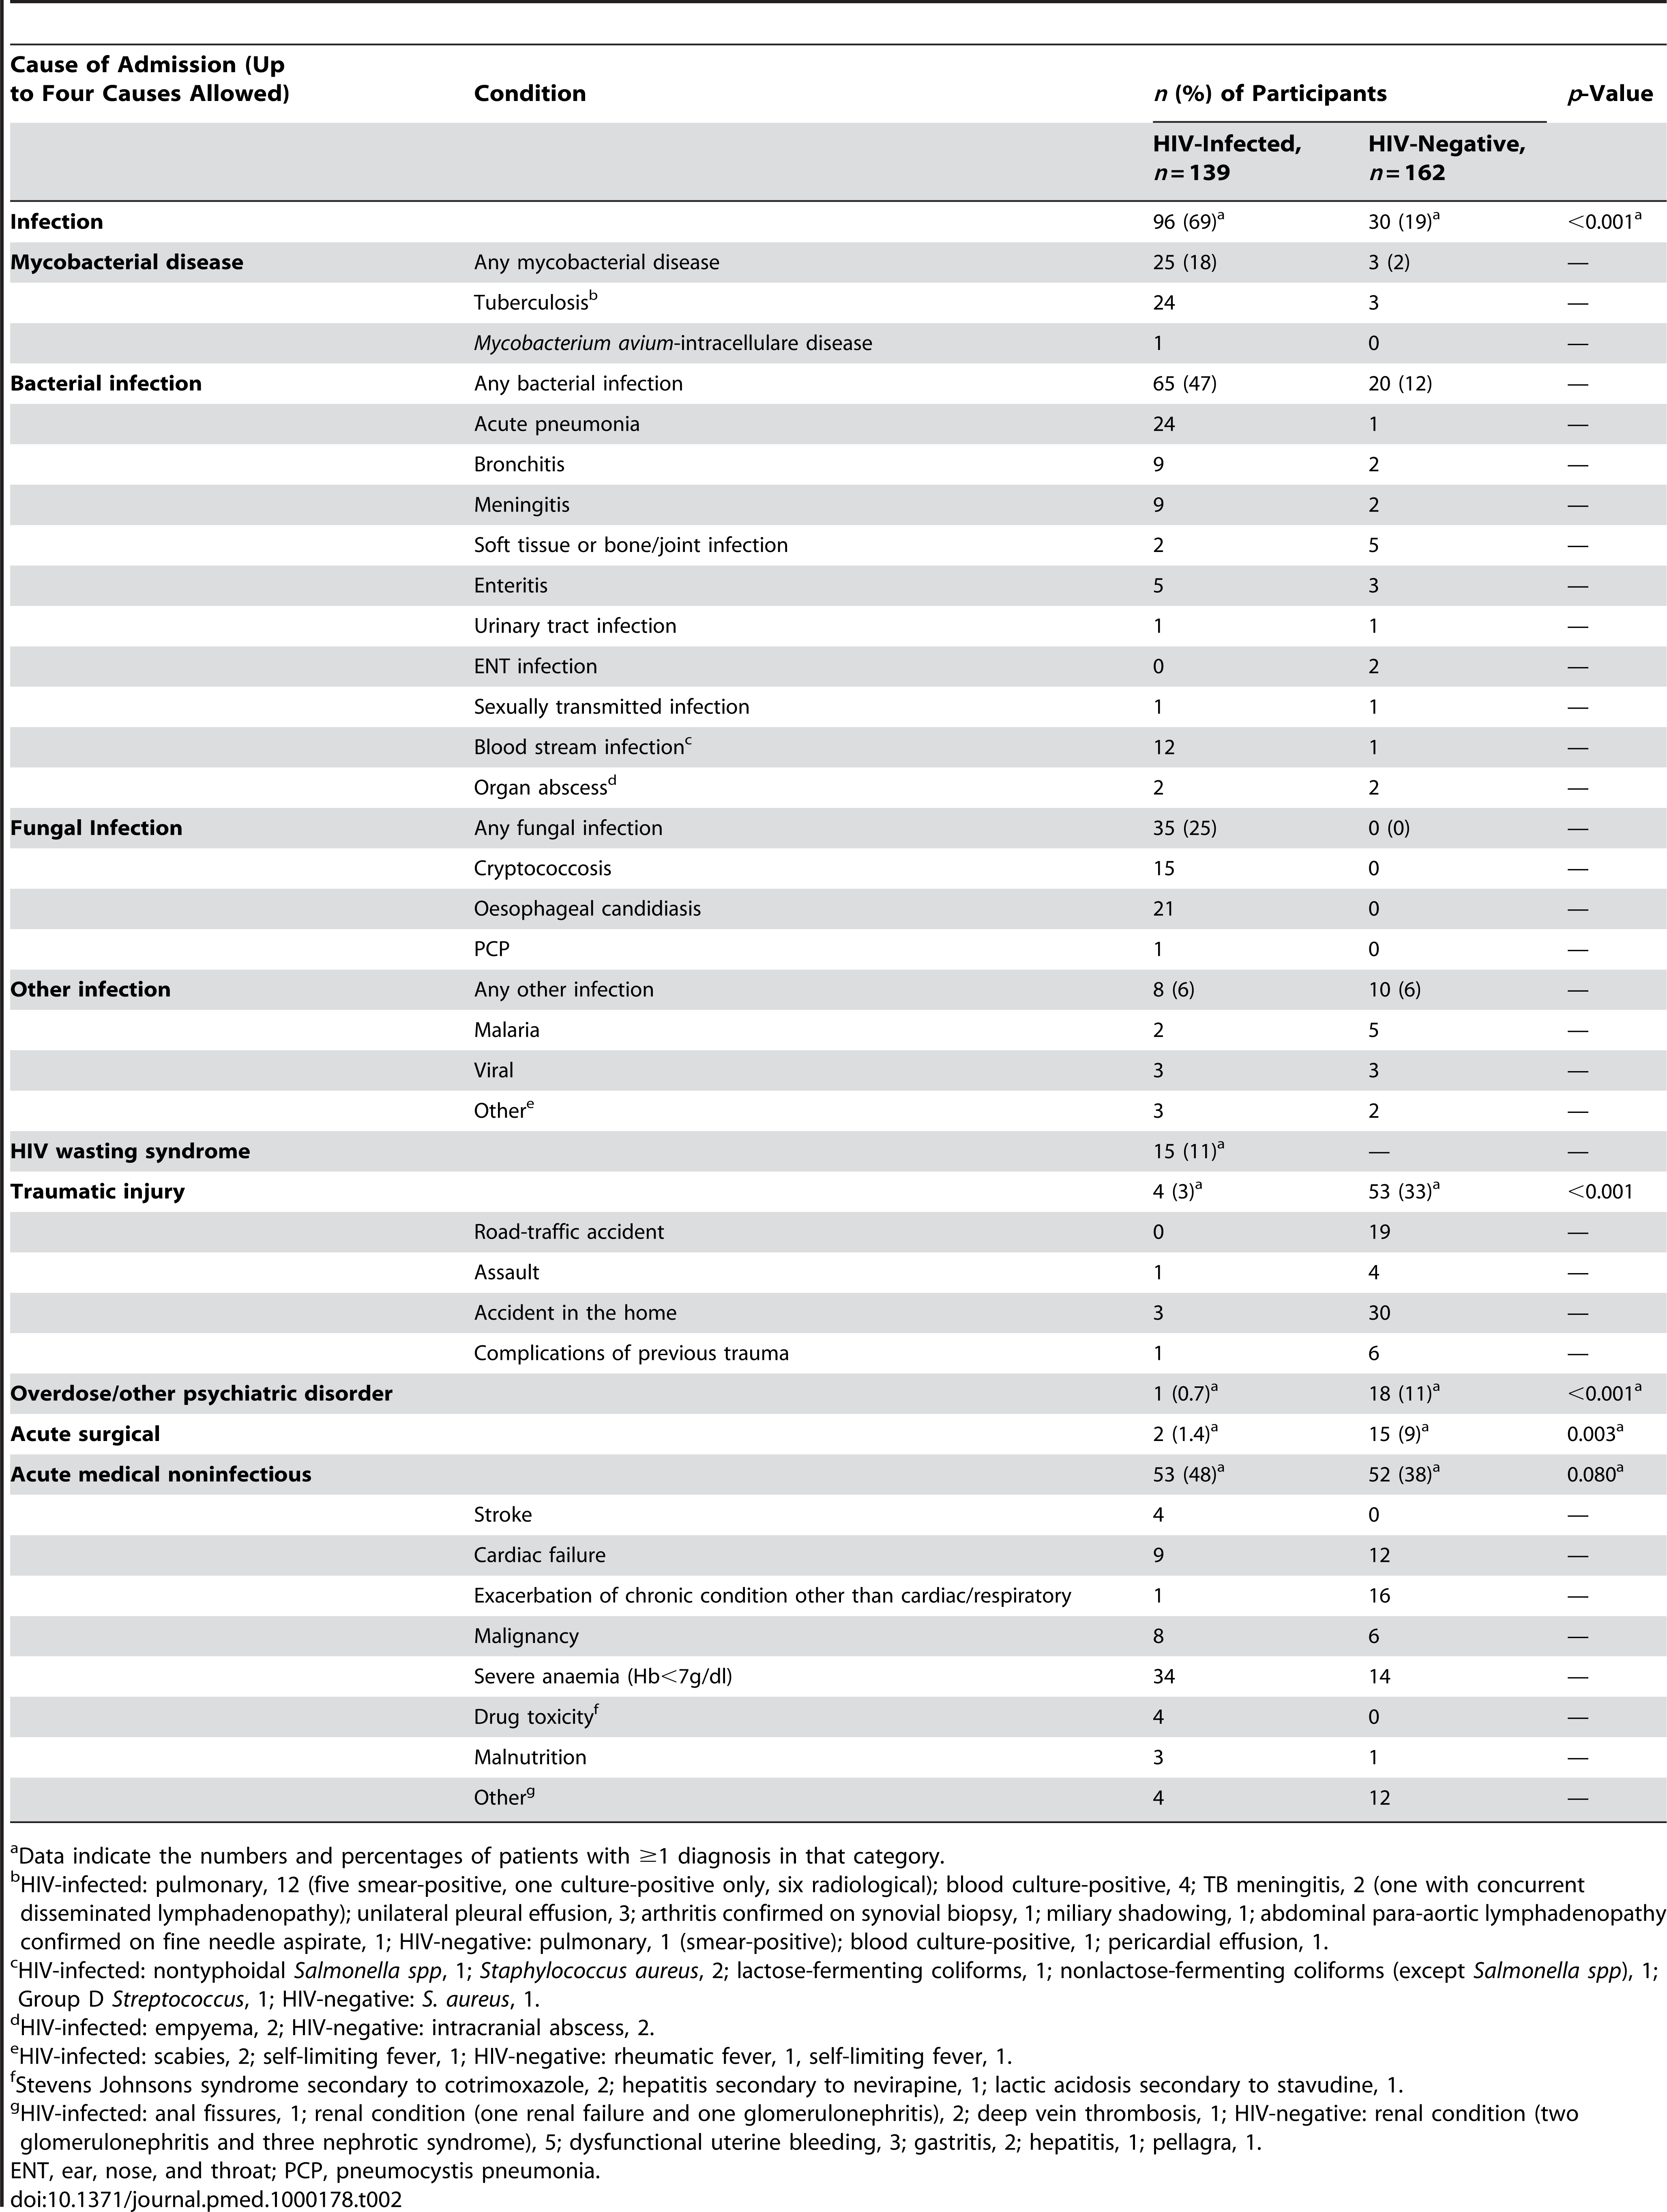 Causes of admission among adolescents admitted to hospital.